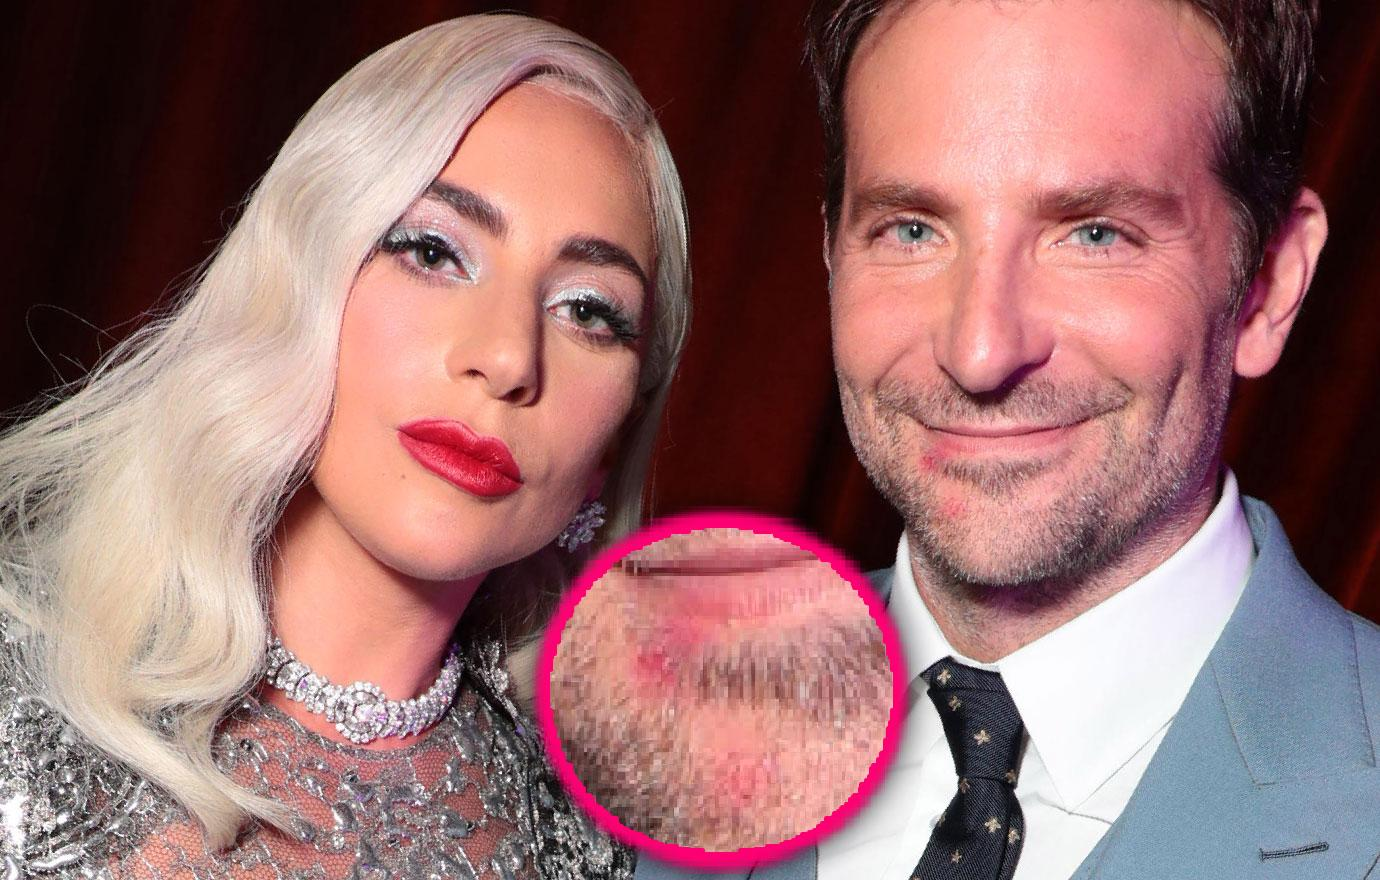 Lady Gaga's Lipstick Seen On Bradley Cooper's Mouth